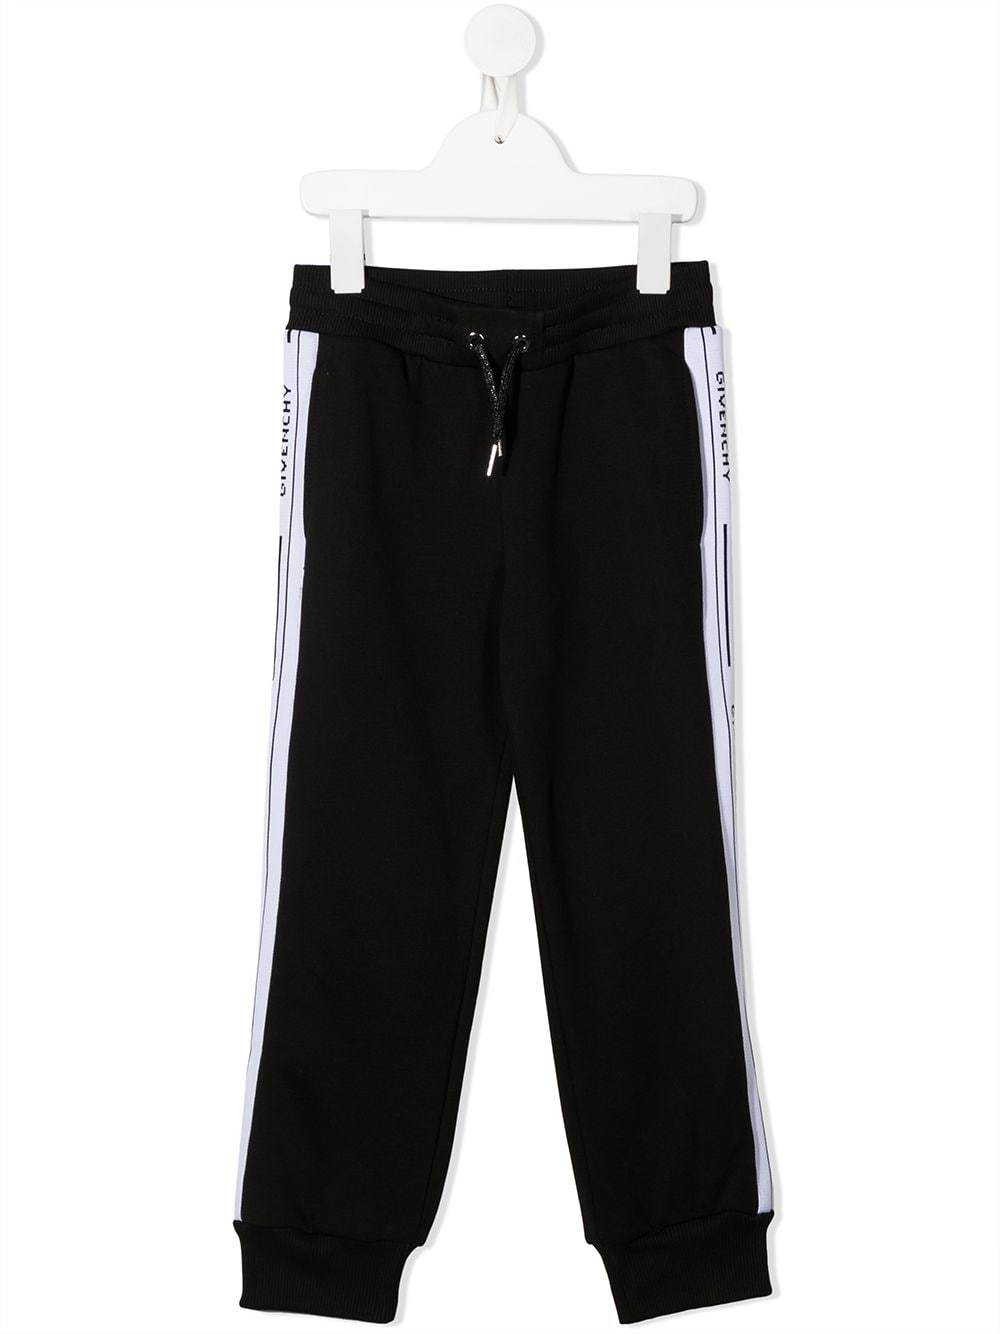 GIVENCHY KIDS Logo Tape Sweatpants Black/White